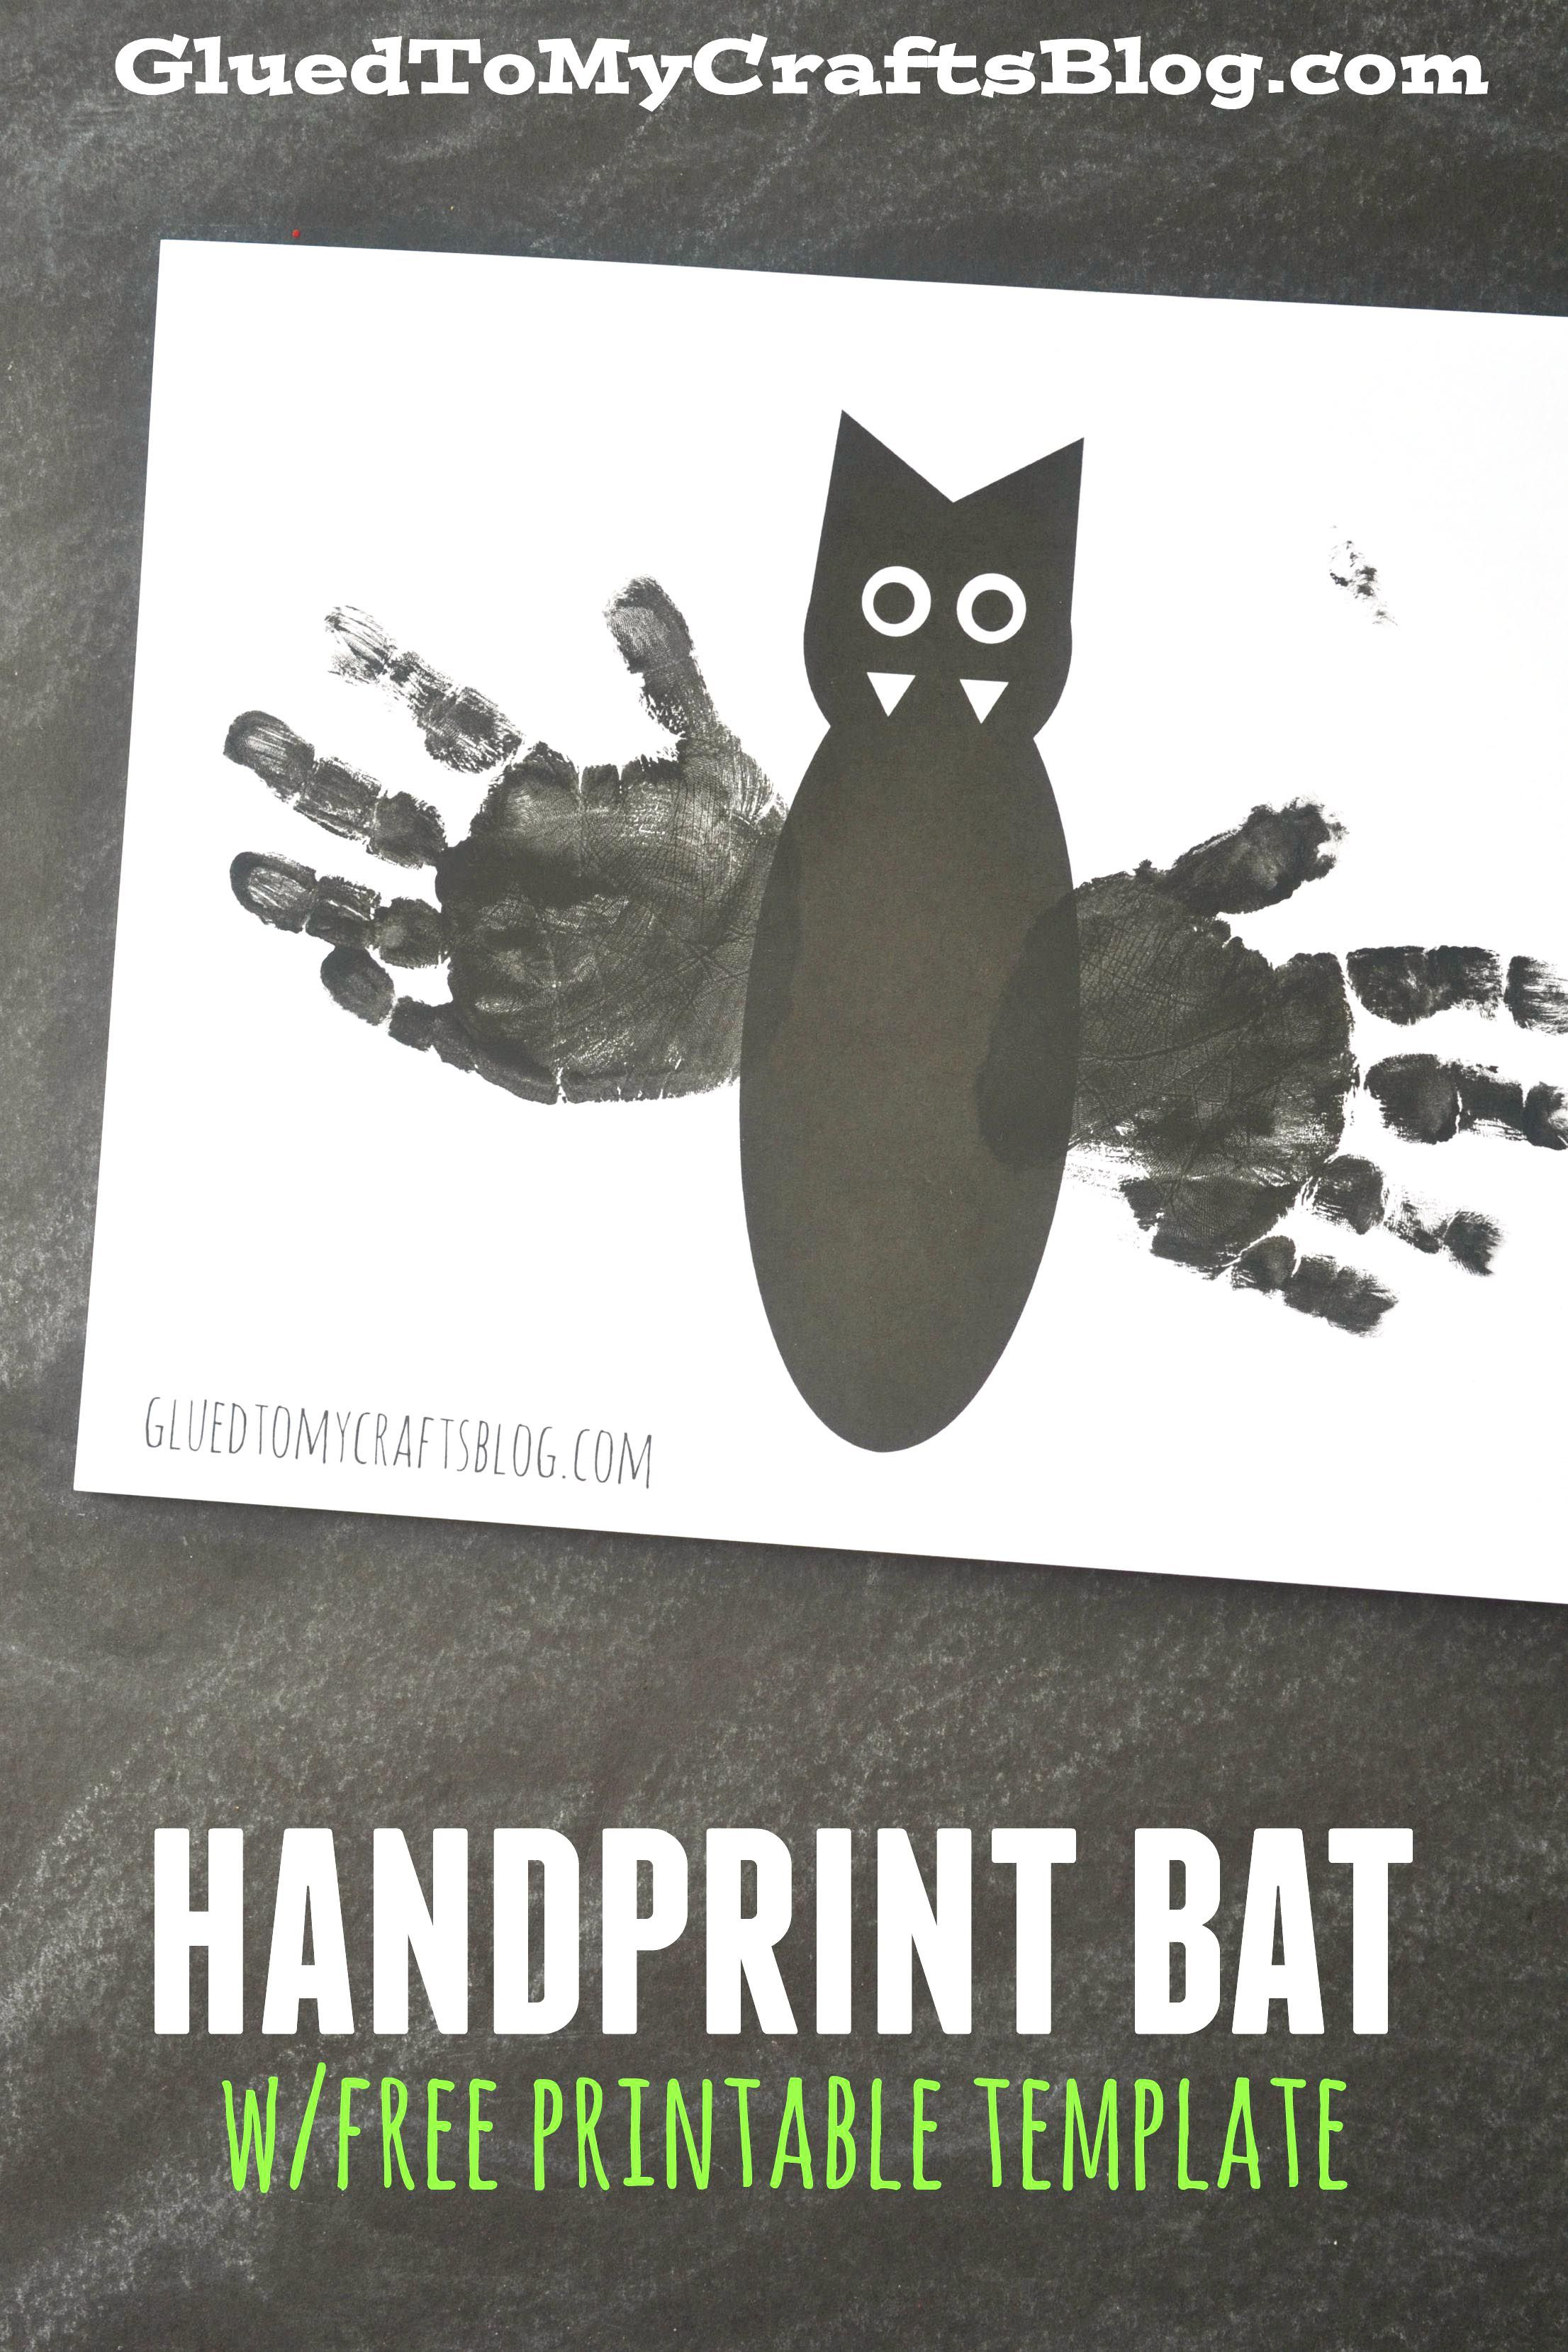 Handprint Bat w/Free Printable Template | Keepsake crafts, Free ...